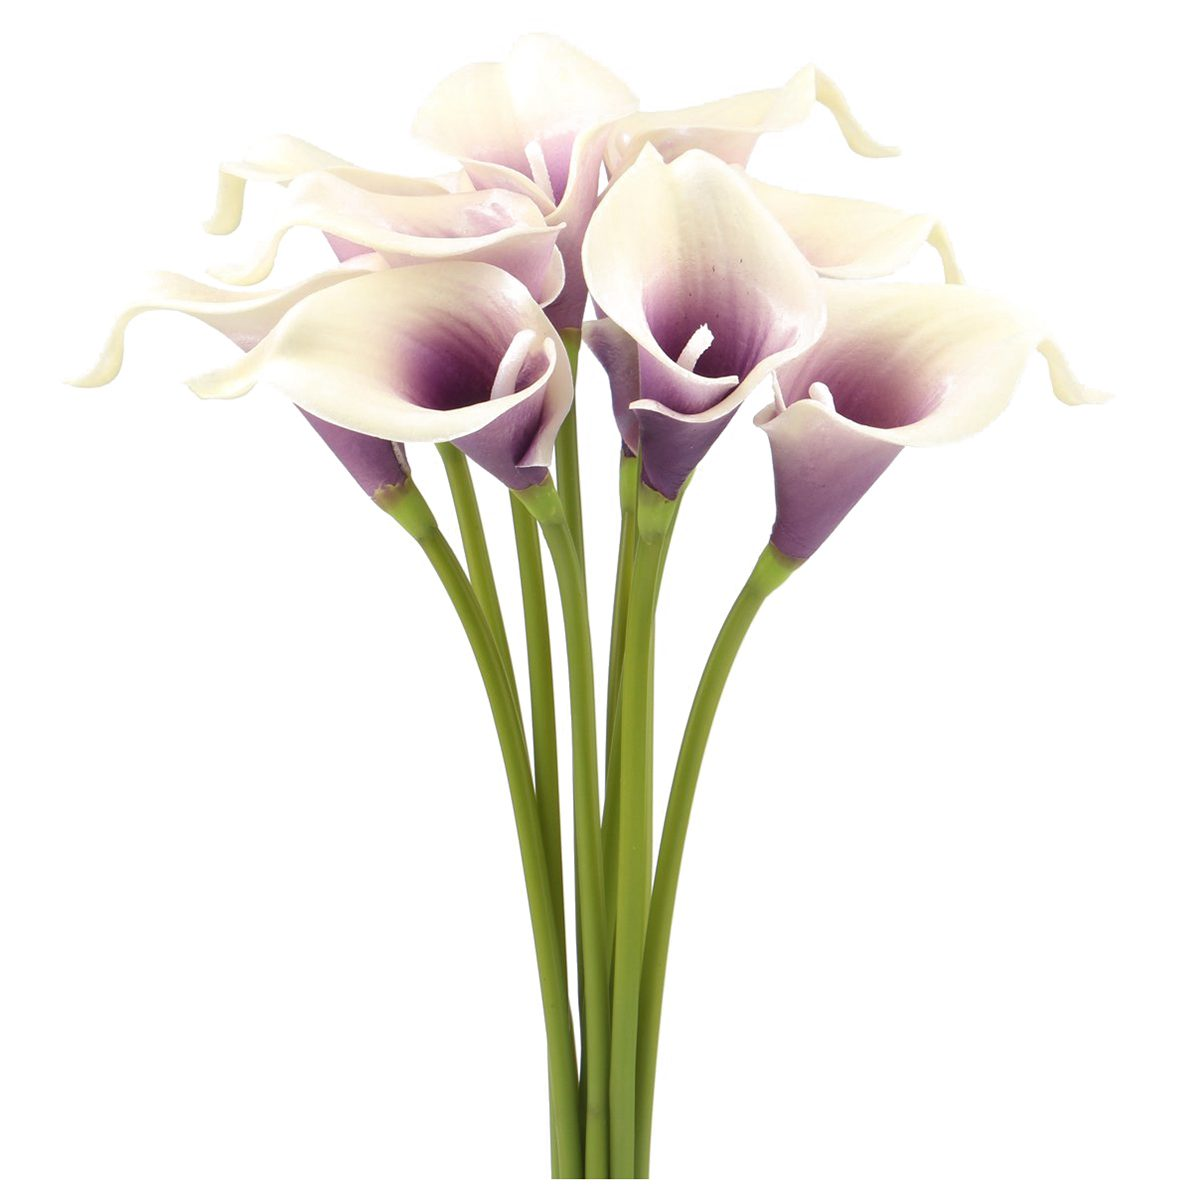 Calla lily bridal wedding bouquet head real touch flower bouquets 10 picture 2 of 5 izmirmasajfo